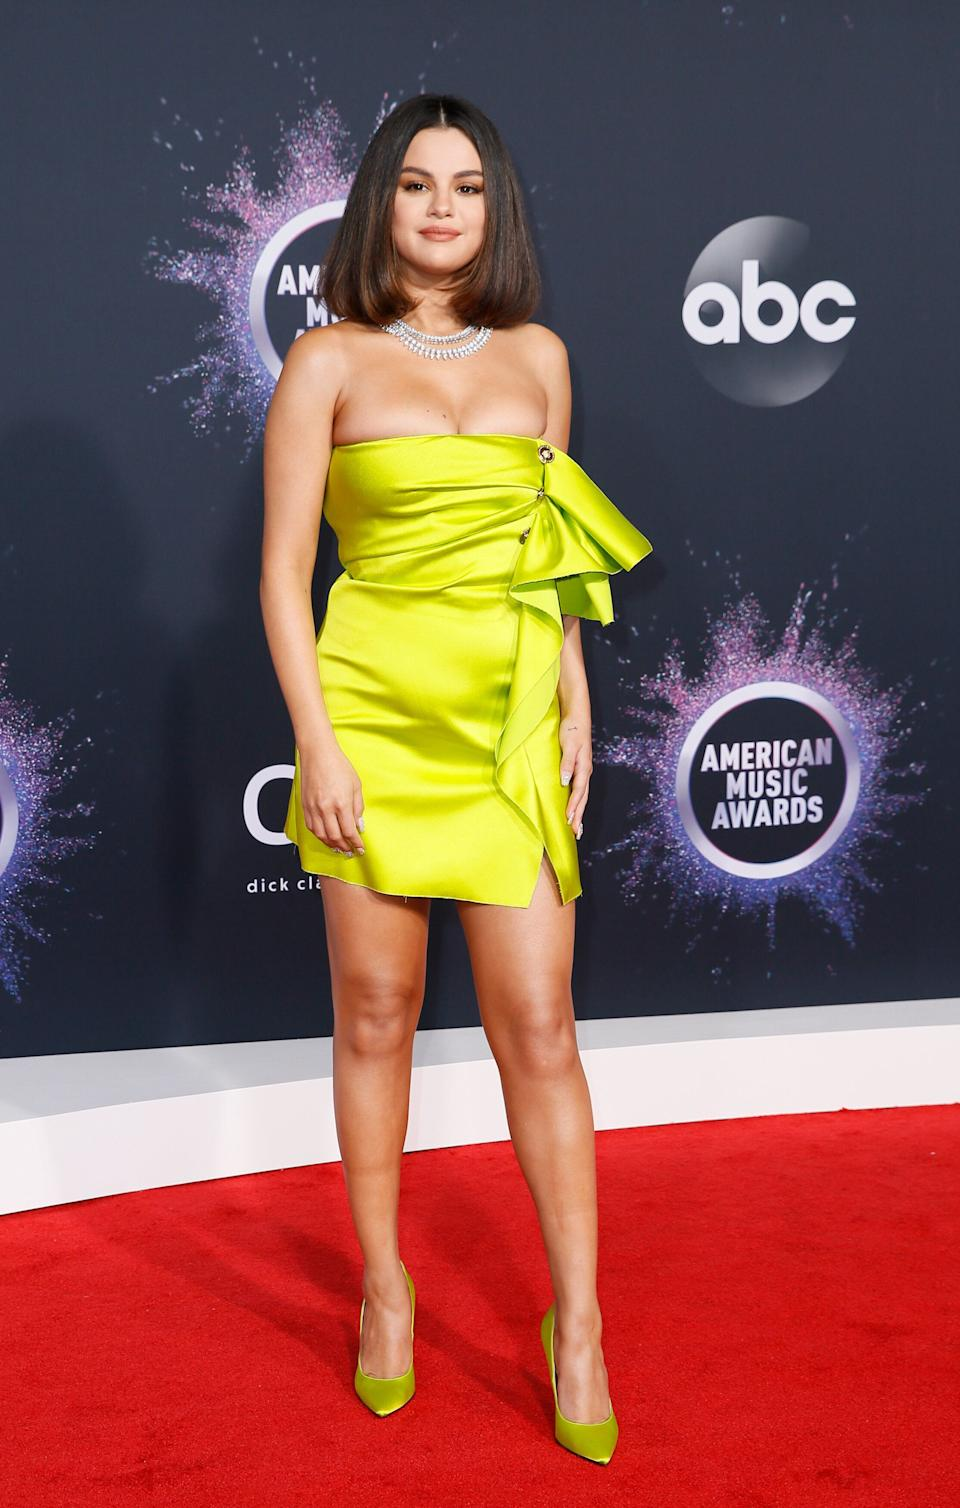 Selena Gomez walks the red carpet at the 2019 American Music Awards in Los Angeles on Nov. 24. (Photo: Danny Moloshok / Reuters)